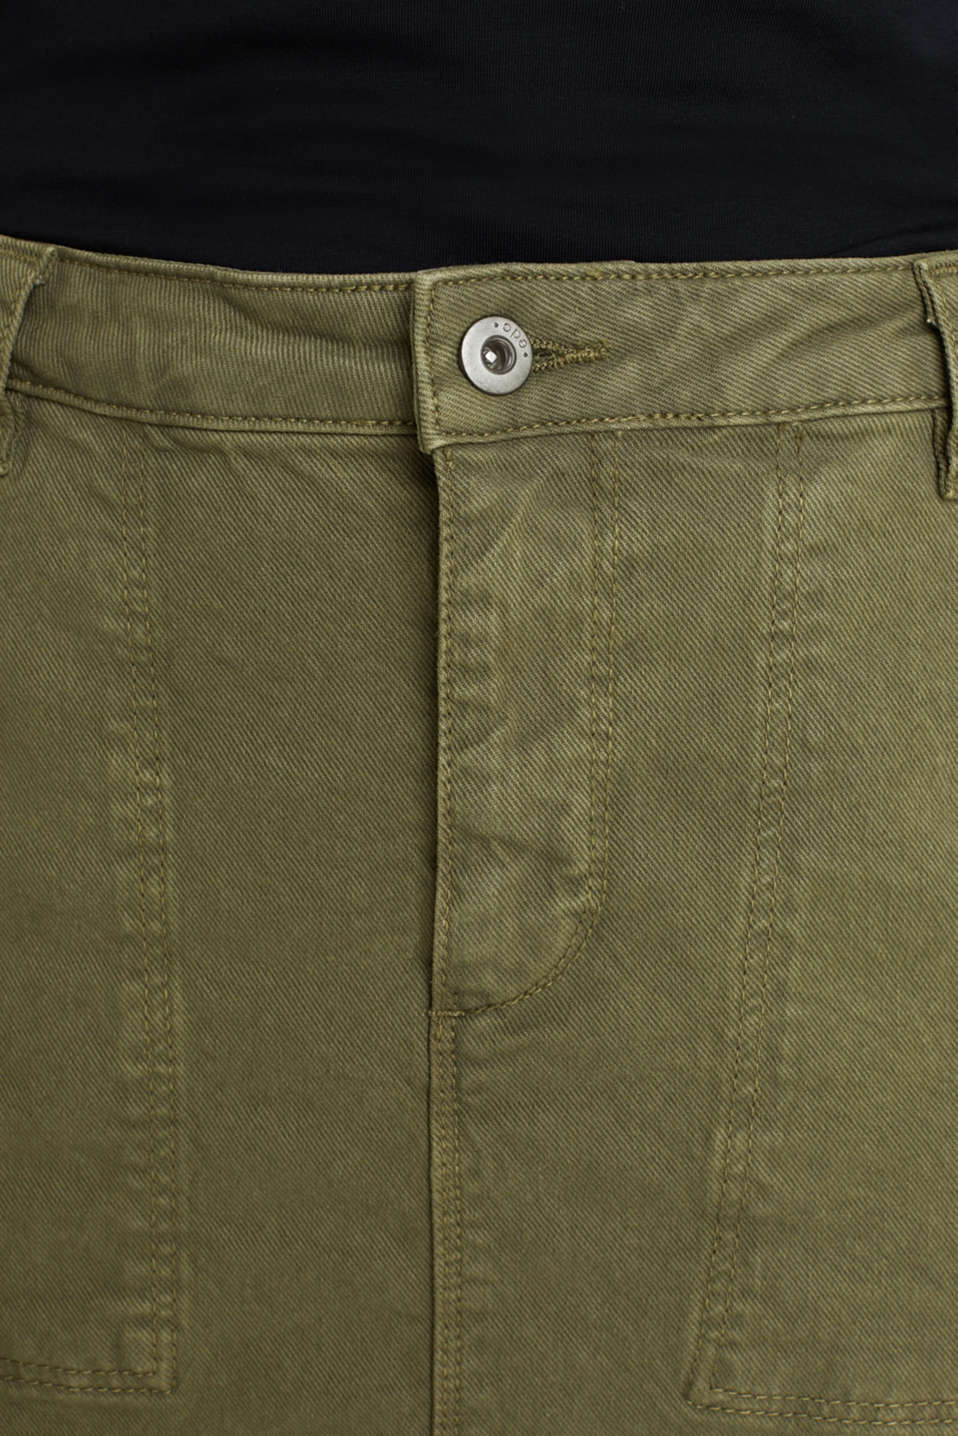 Denim skirt with pockets, KHAKI GREEN, detail image number 2